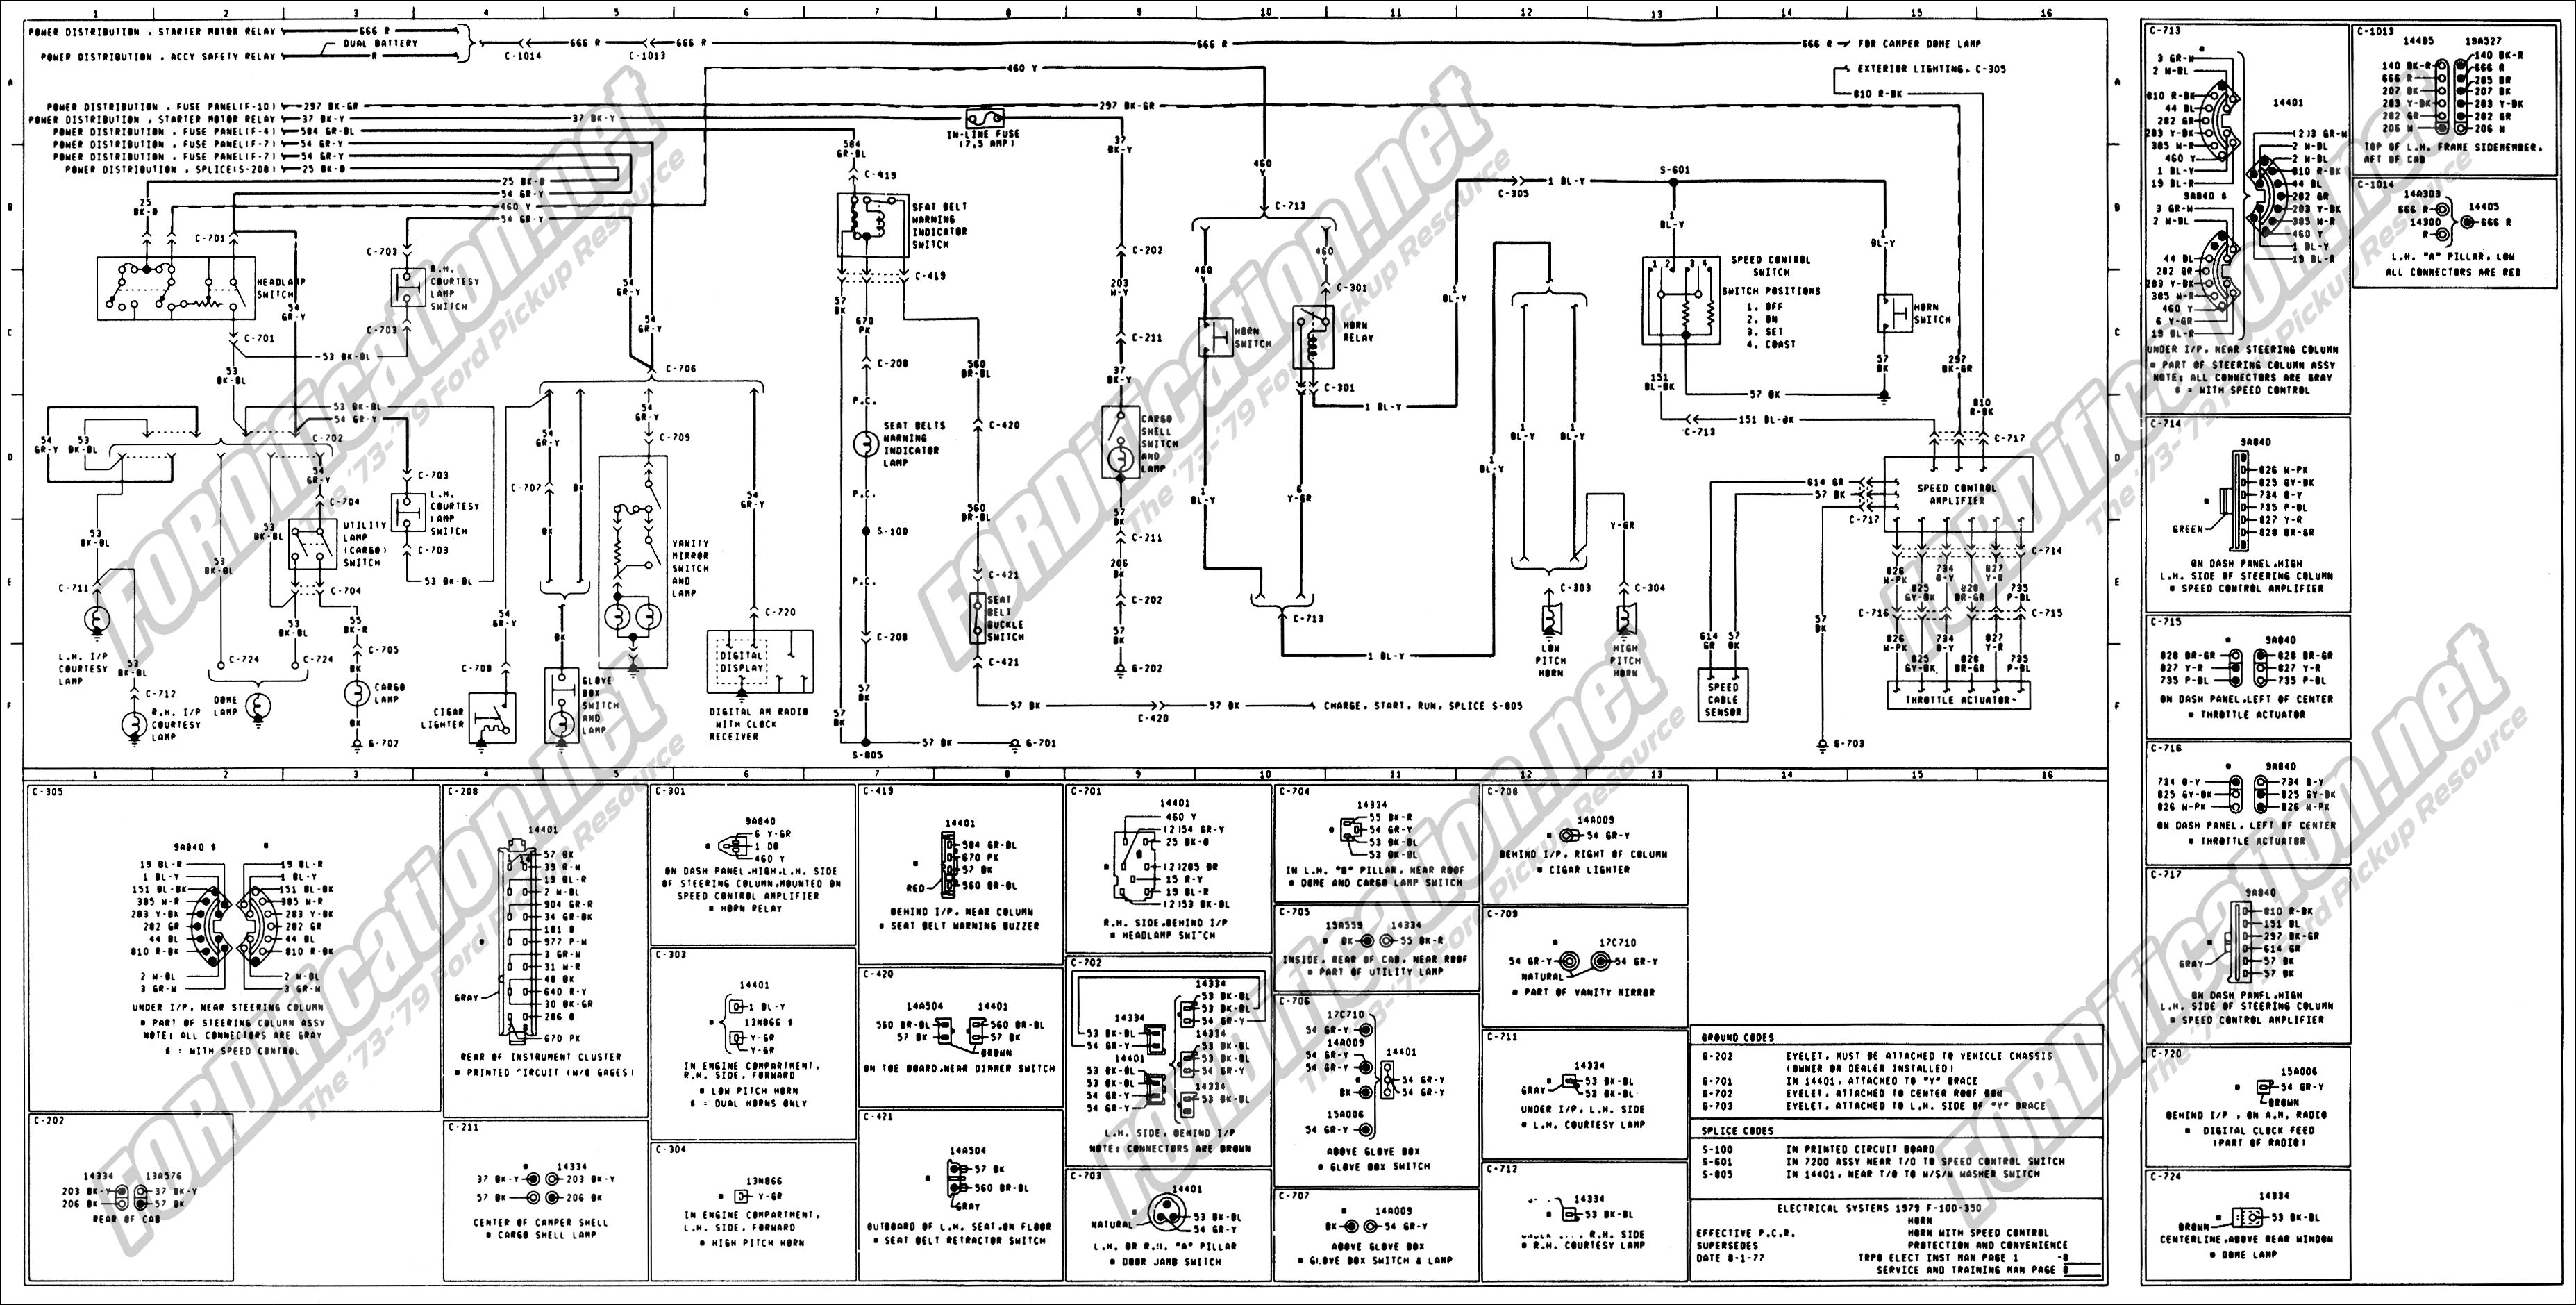 wiring_79master_8of9 1973 1979 ford truck wiring diagrams & schematics fordification net f250 wiring diagram at nearapp.co